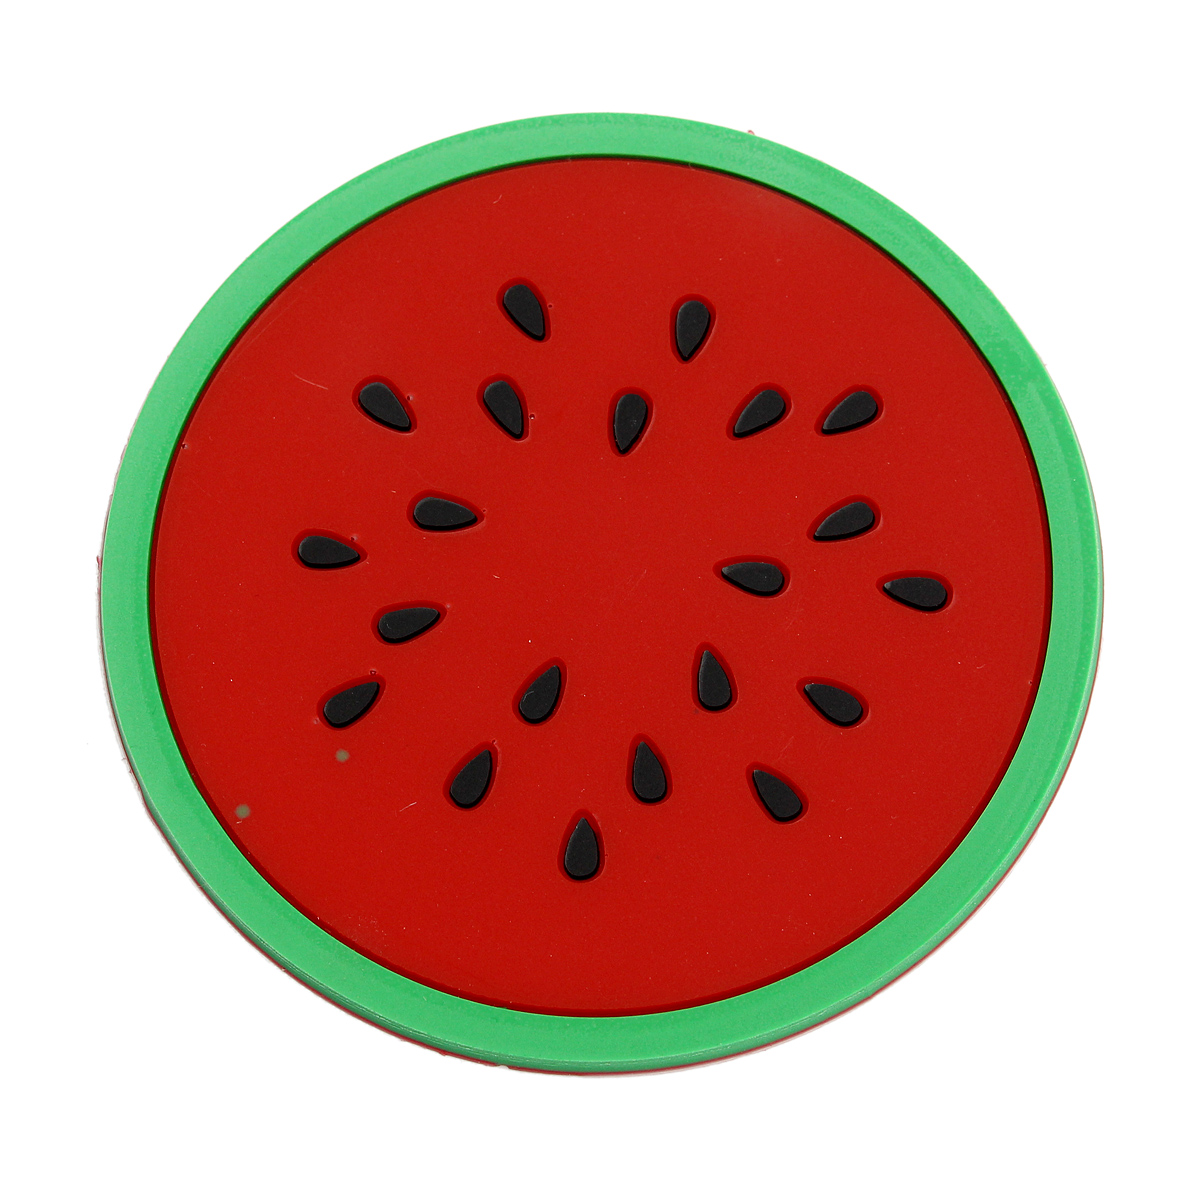 Silicone Fruit Coffee Placemat Coaster Tea Cup Mug Beverage Holder Pad Mat Bowl